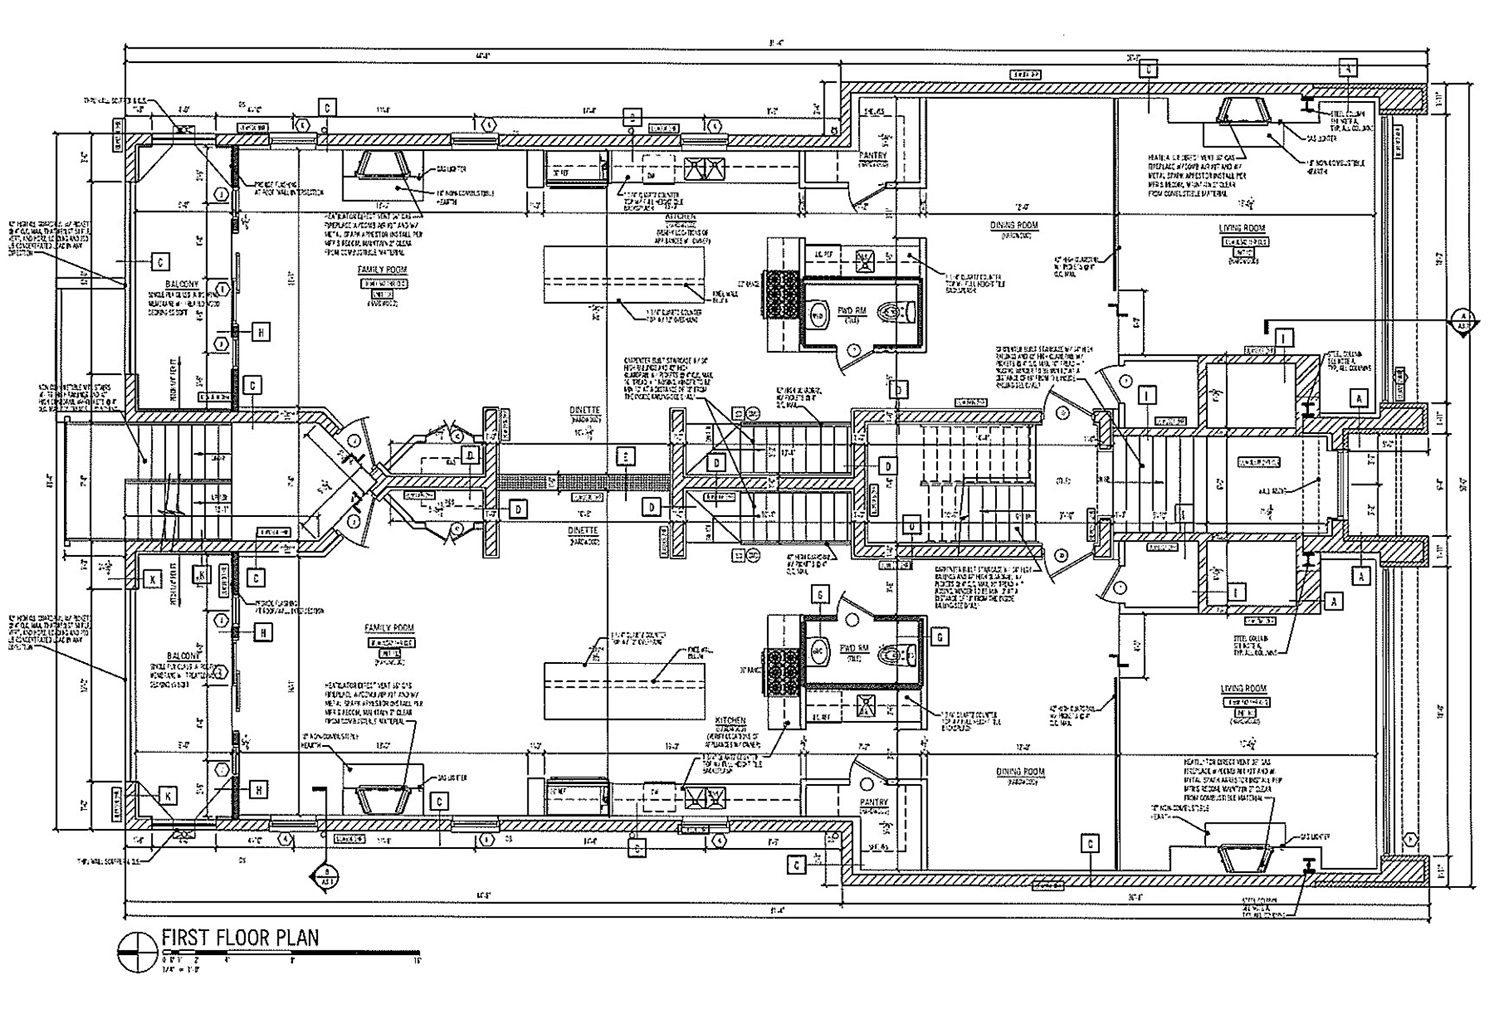 Ground Floor Plan for 3010 W Montrose Avenue. Drawing by 360 Design Studio